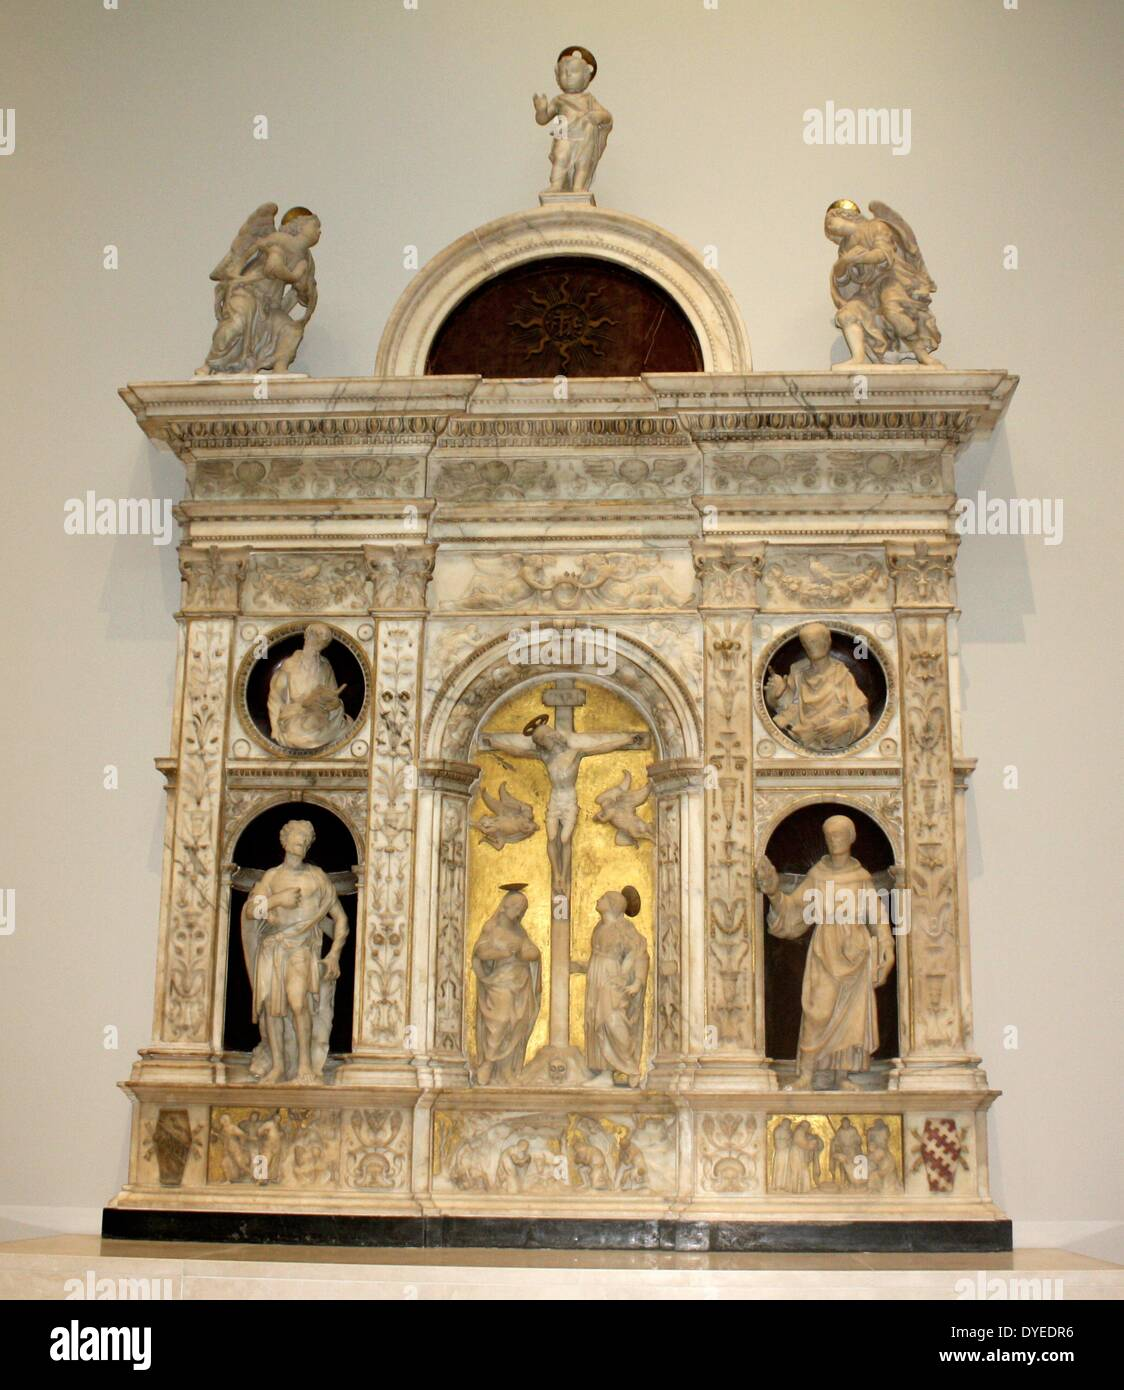 Altarpiece with the Crucifixion Flanked by Saints 1493 A.D. - Stock Image